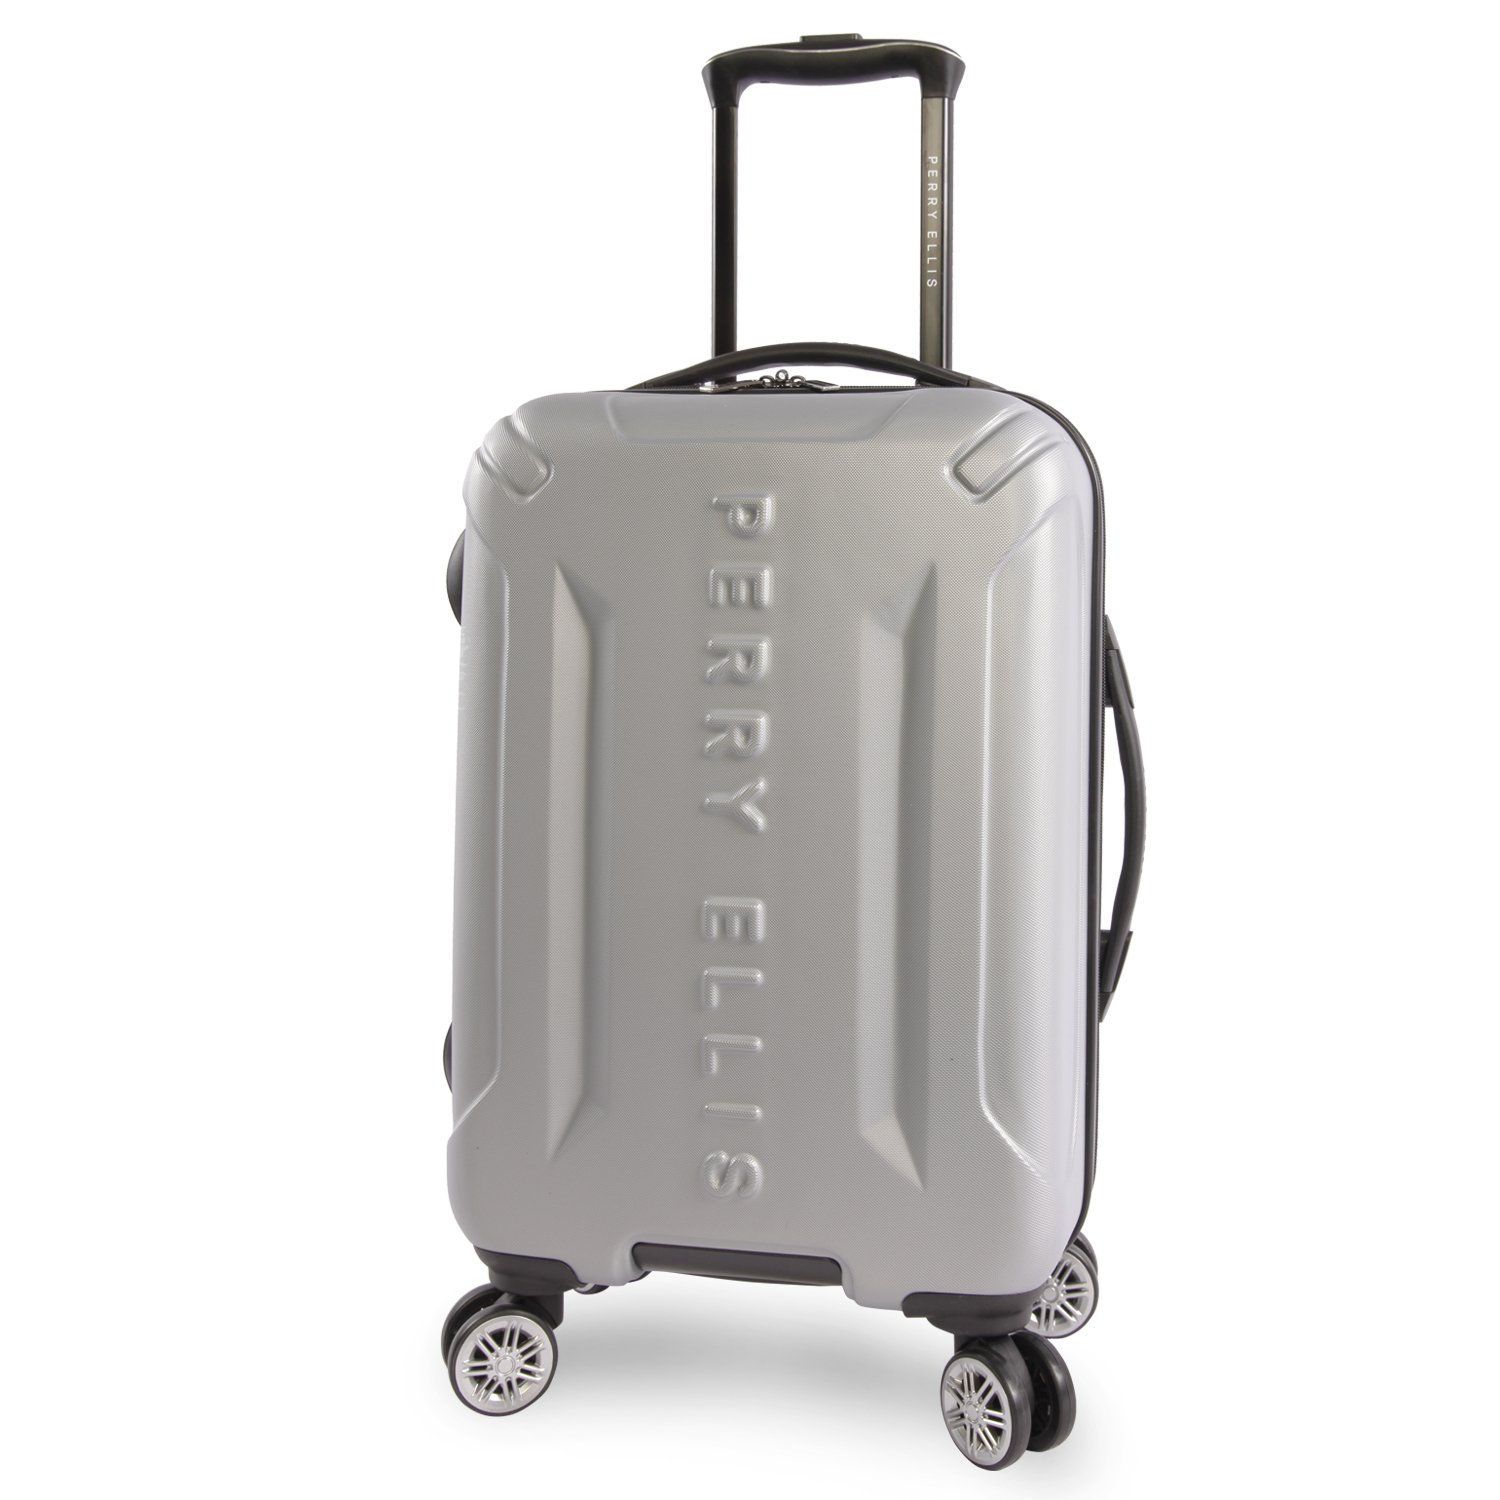 Perry Ellis Delancey II Hardside Carry-on Spinner Luggage, Silver